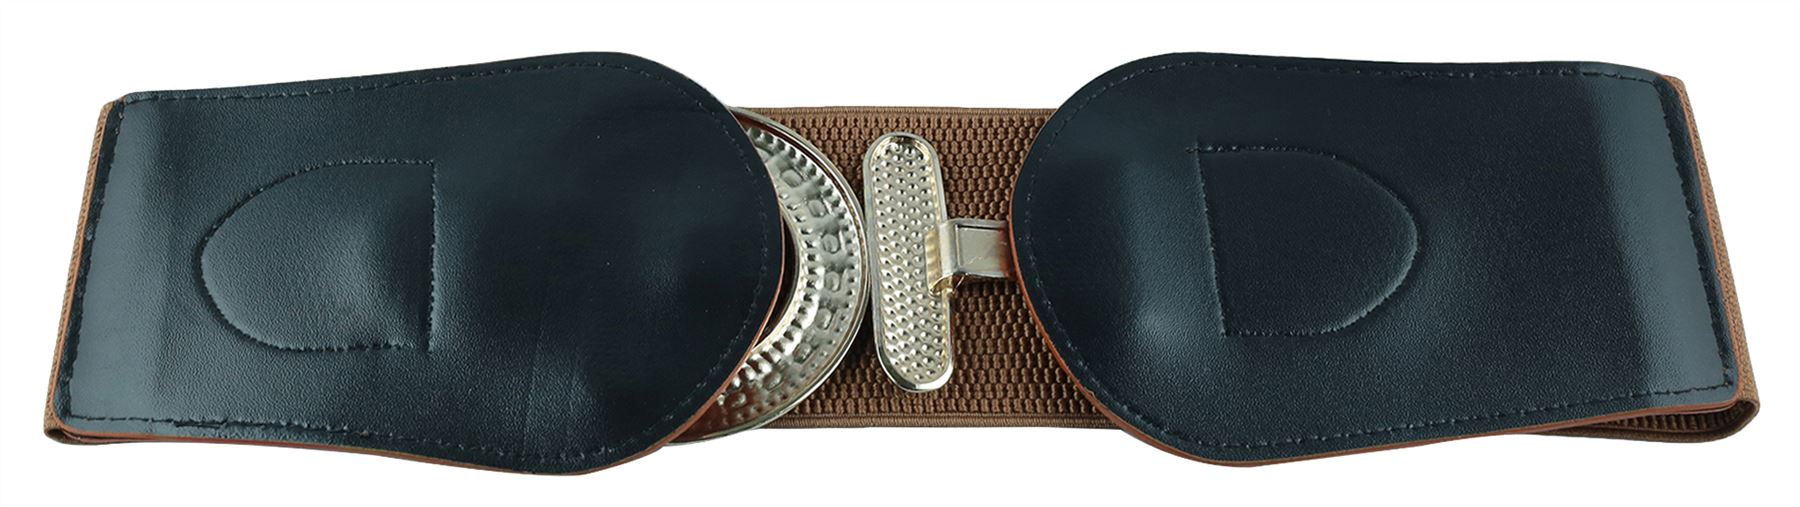 Ladies-Reptile-Skin-PU-Leather-Circle-Buckle-Wide-Stretch-Elasticated-Belts